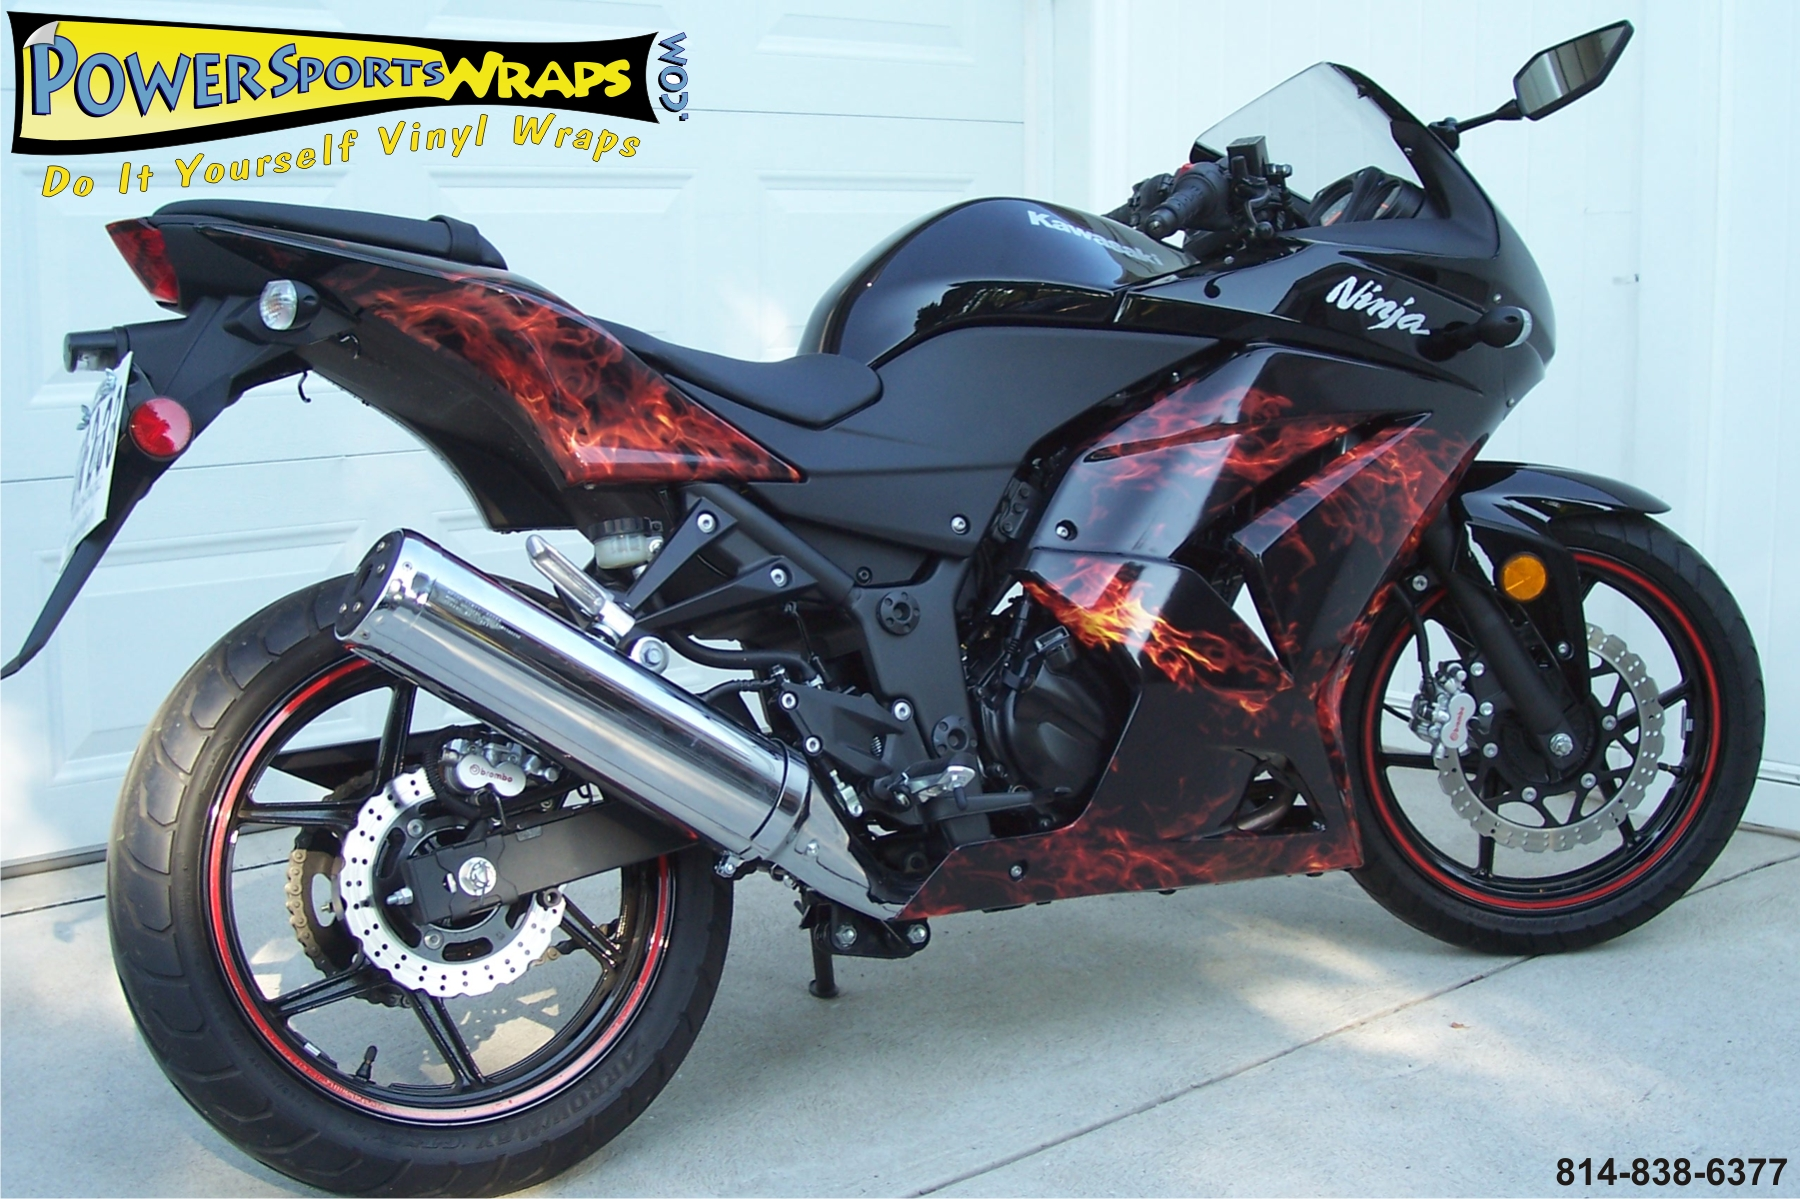 Amazing Digital Print True Flame Fire Natural Wrap On A Brand New 2008 Kawasaki Ninja 250r How Can We Go Over All Those Contours